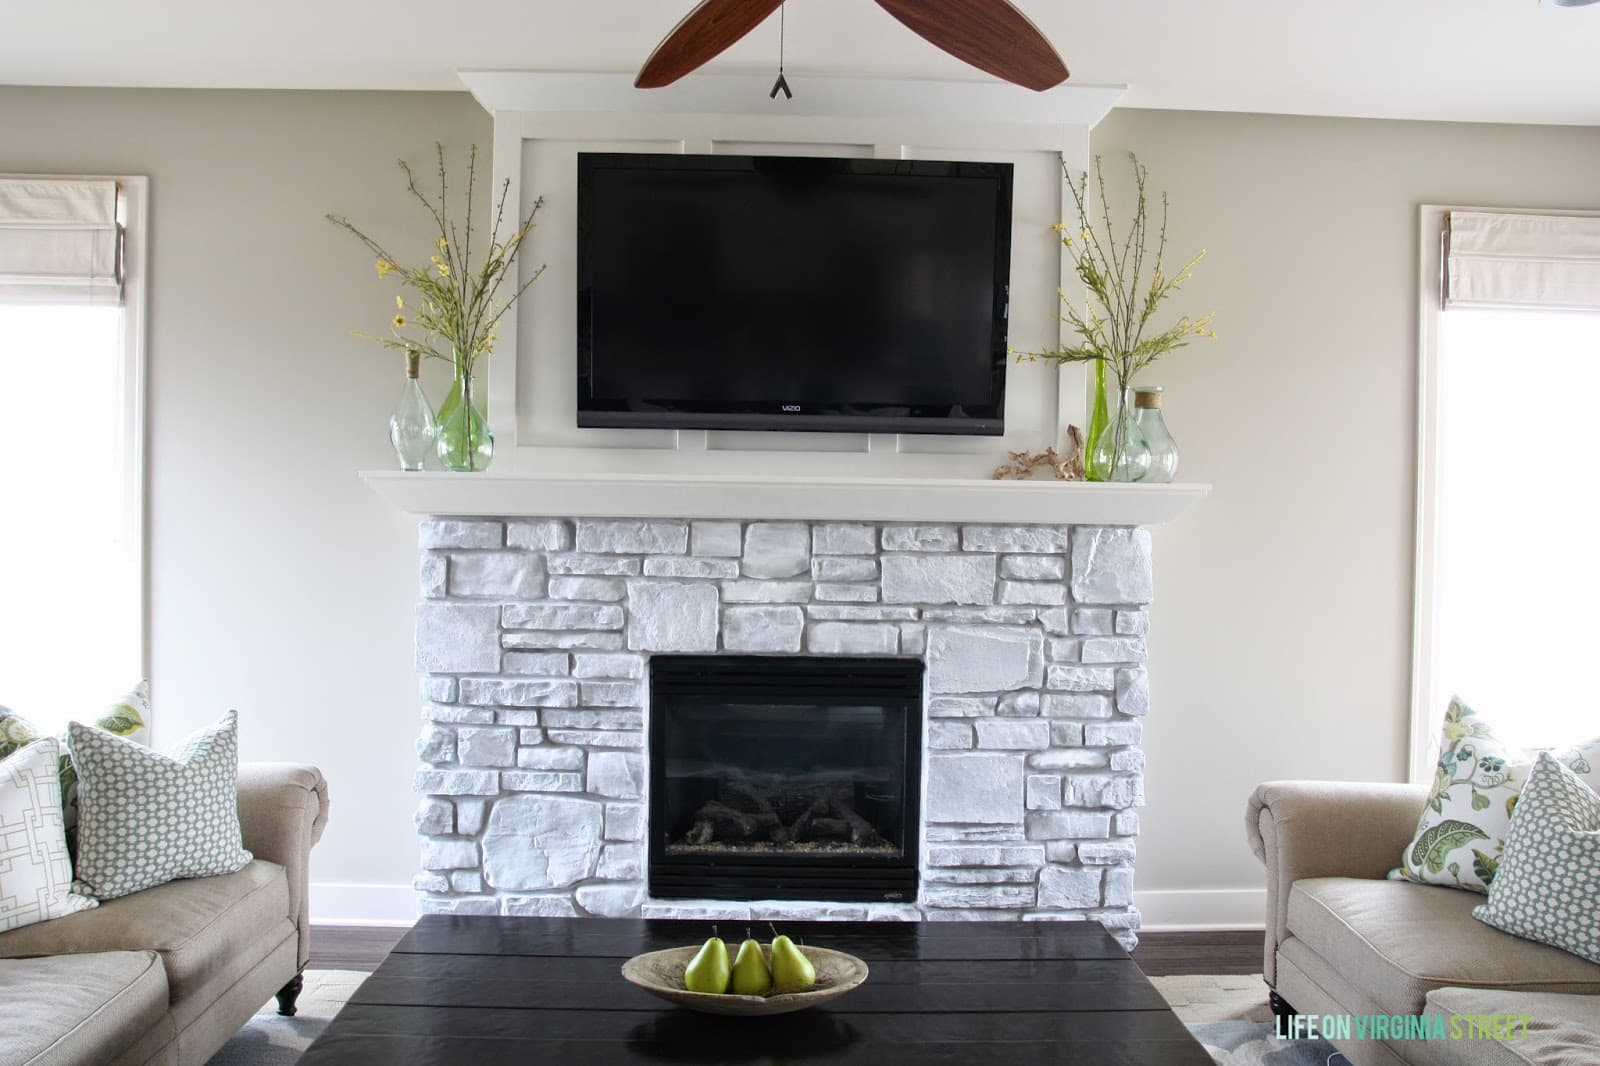 Whitewash Fireplace Before And After A White Washed Stone Fireplace Tutorial Life On Virginia Street